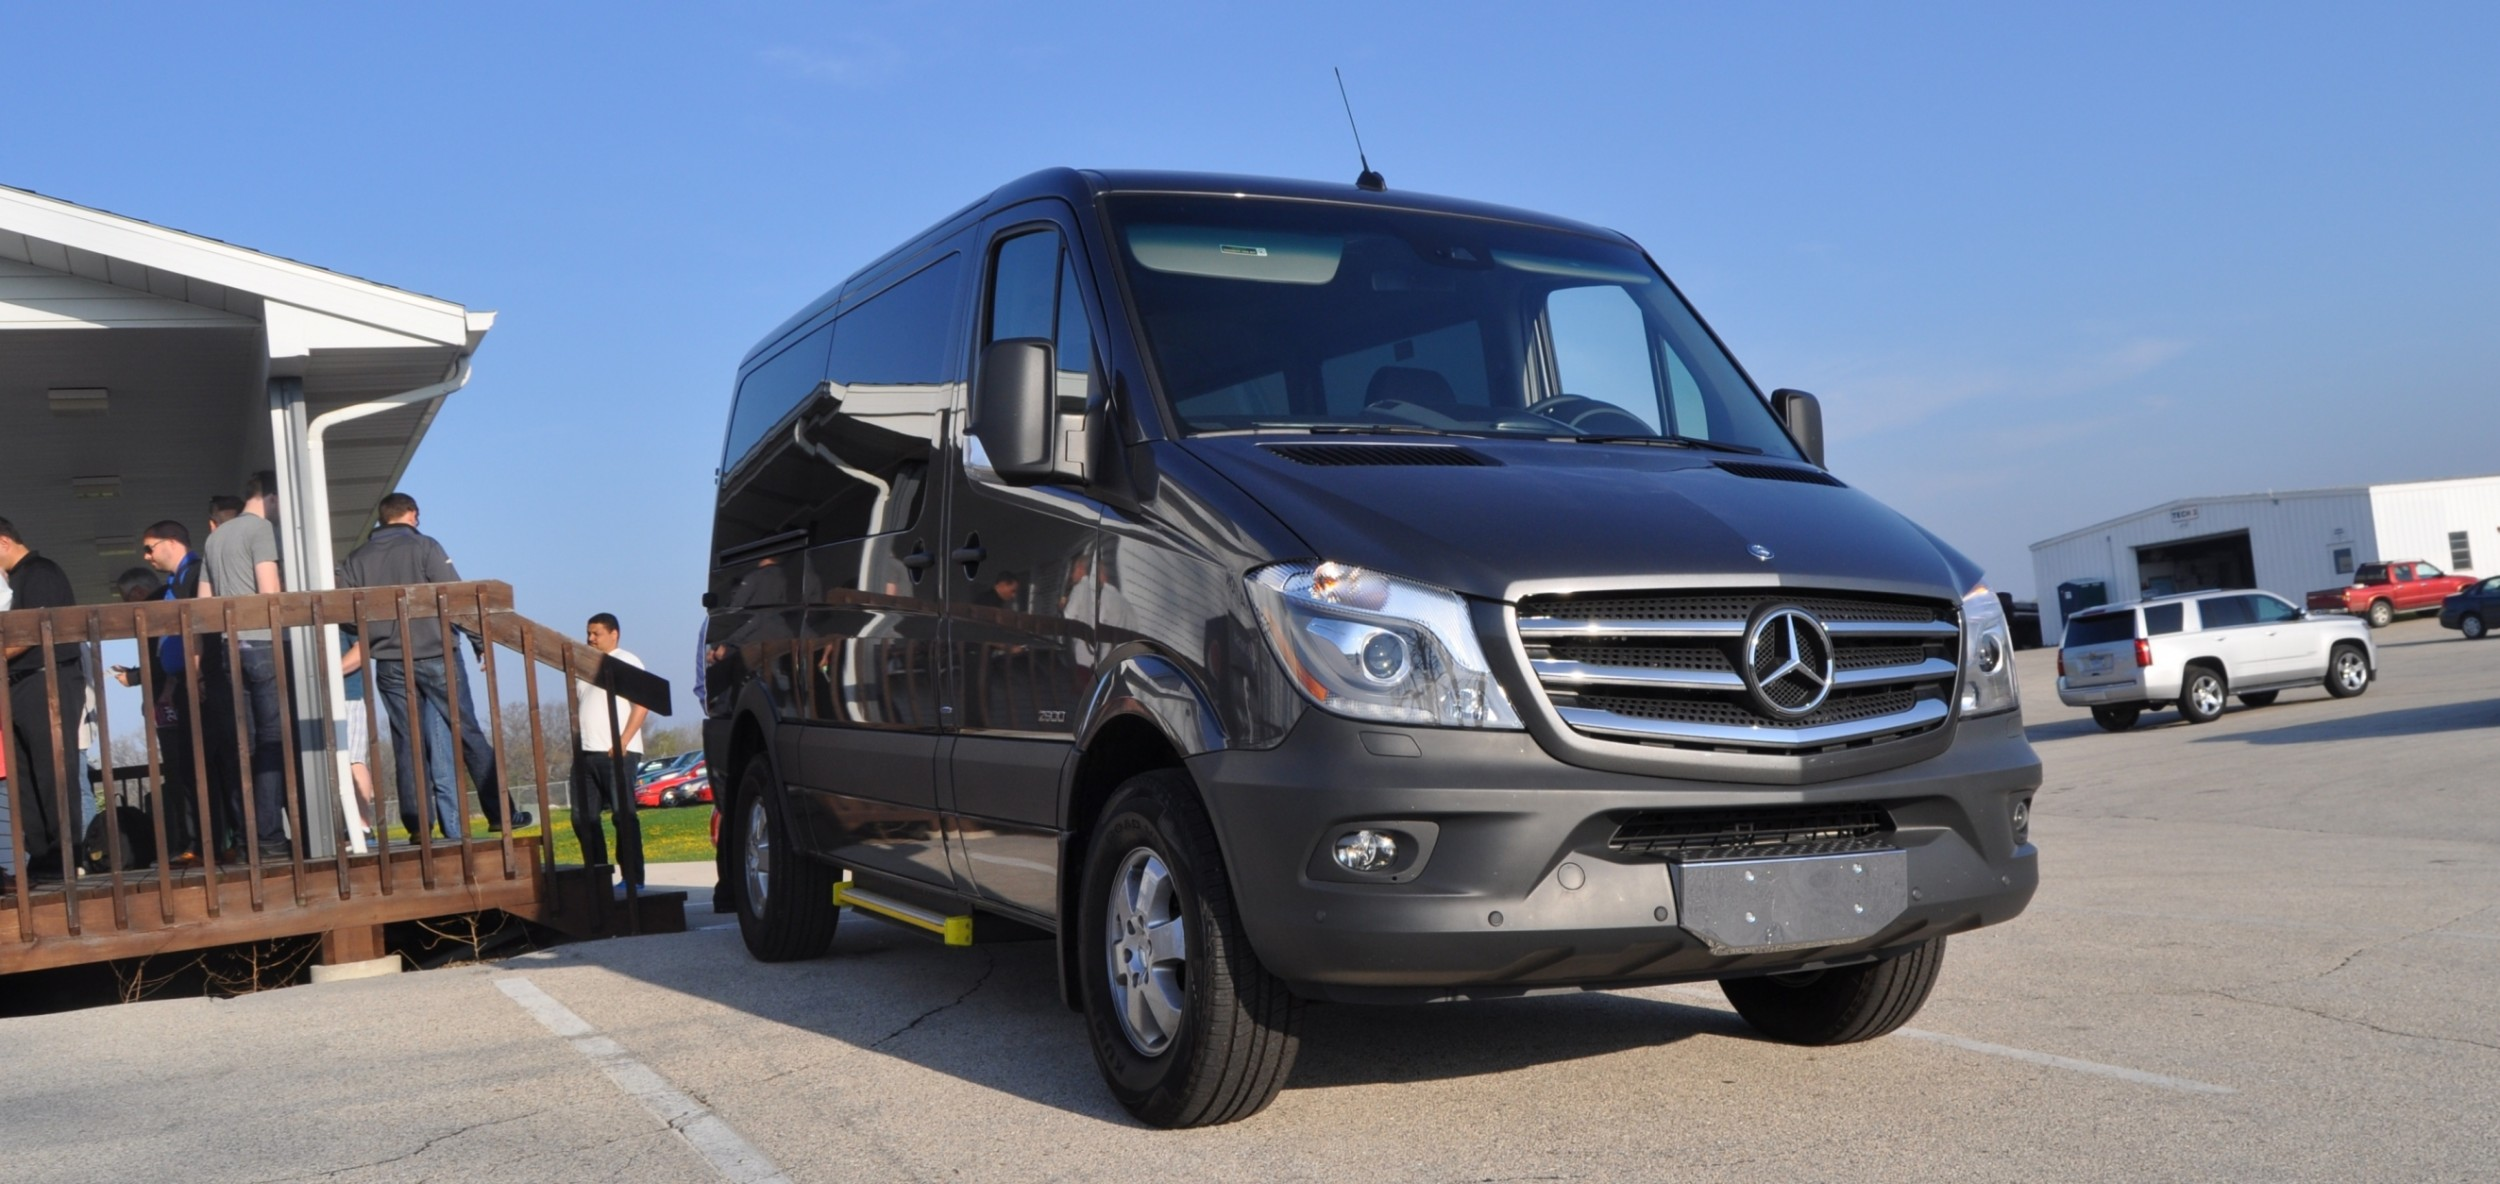 New 2014 mercedes benz sprinter vans in real life 2015 4x4 for Mercedes benz van 2015